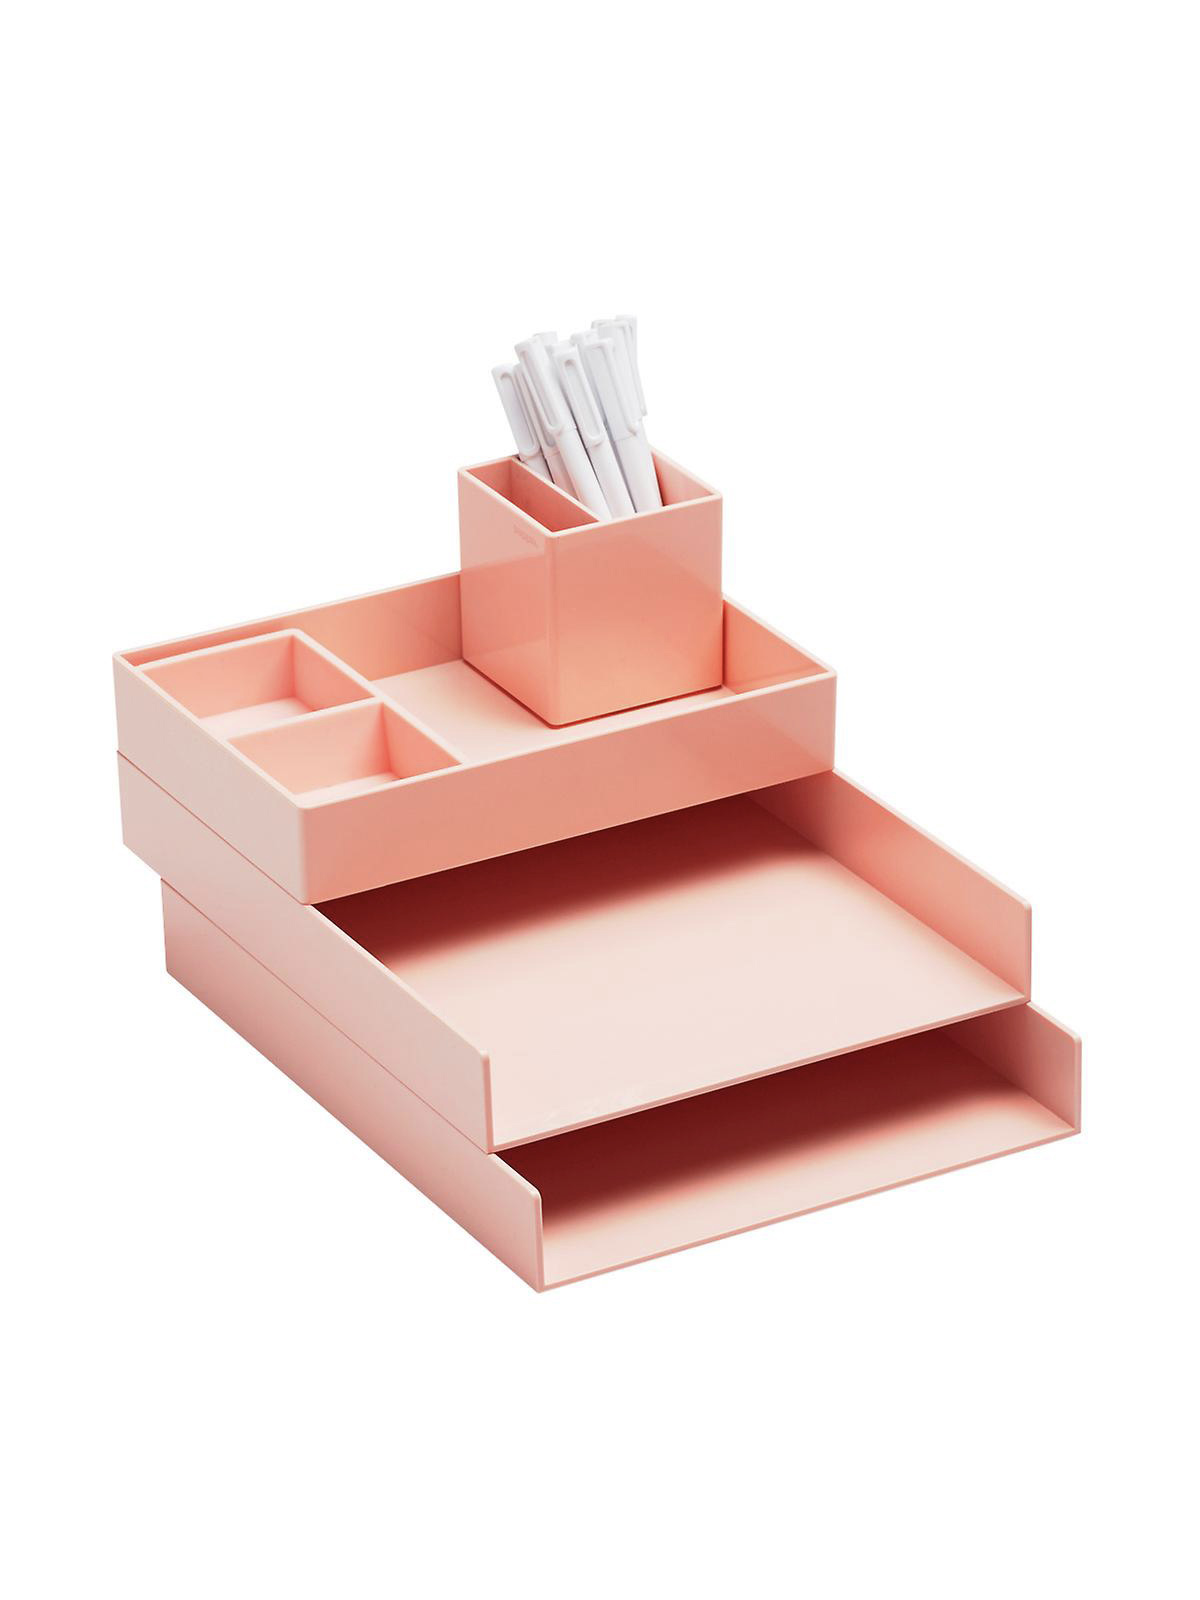 Best Desk Organizer for Those Who Love Color Coordination